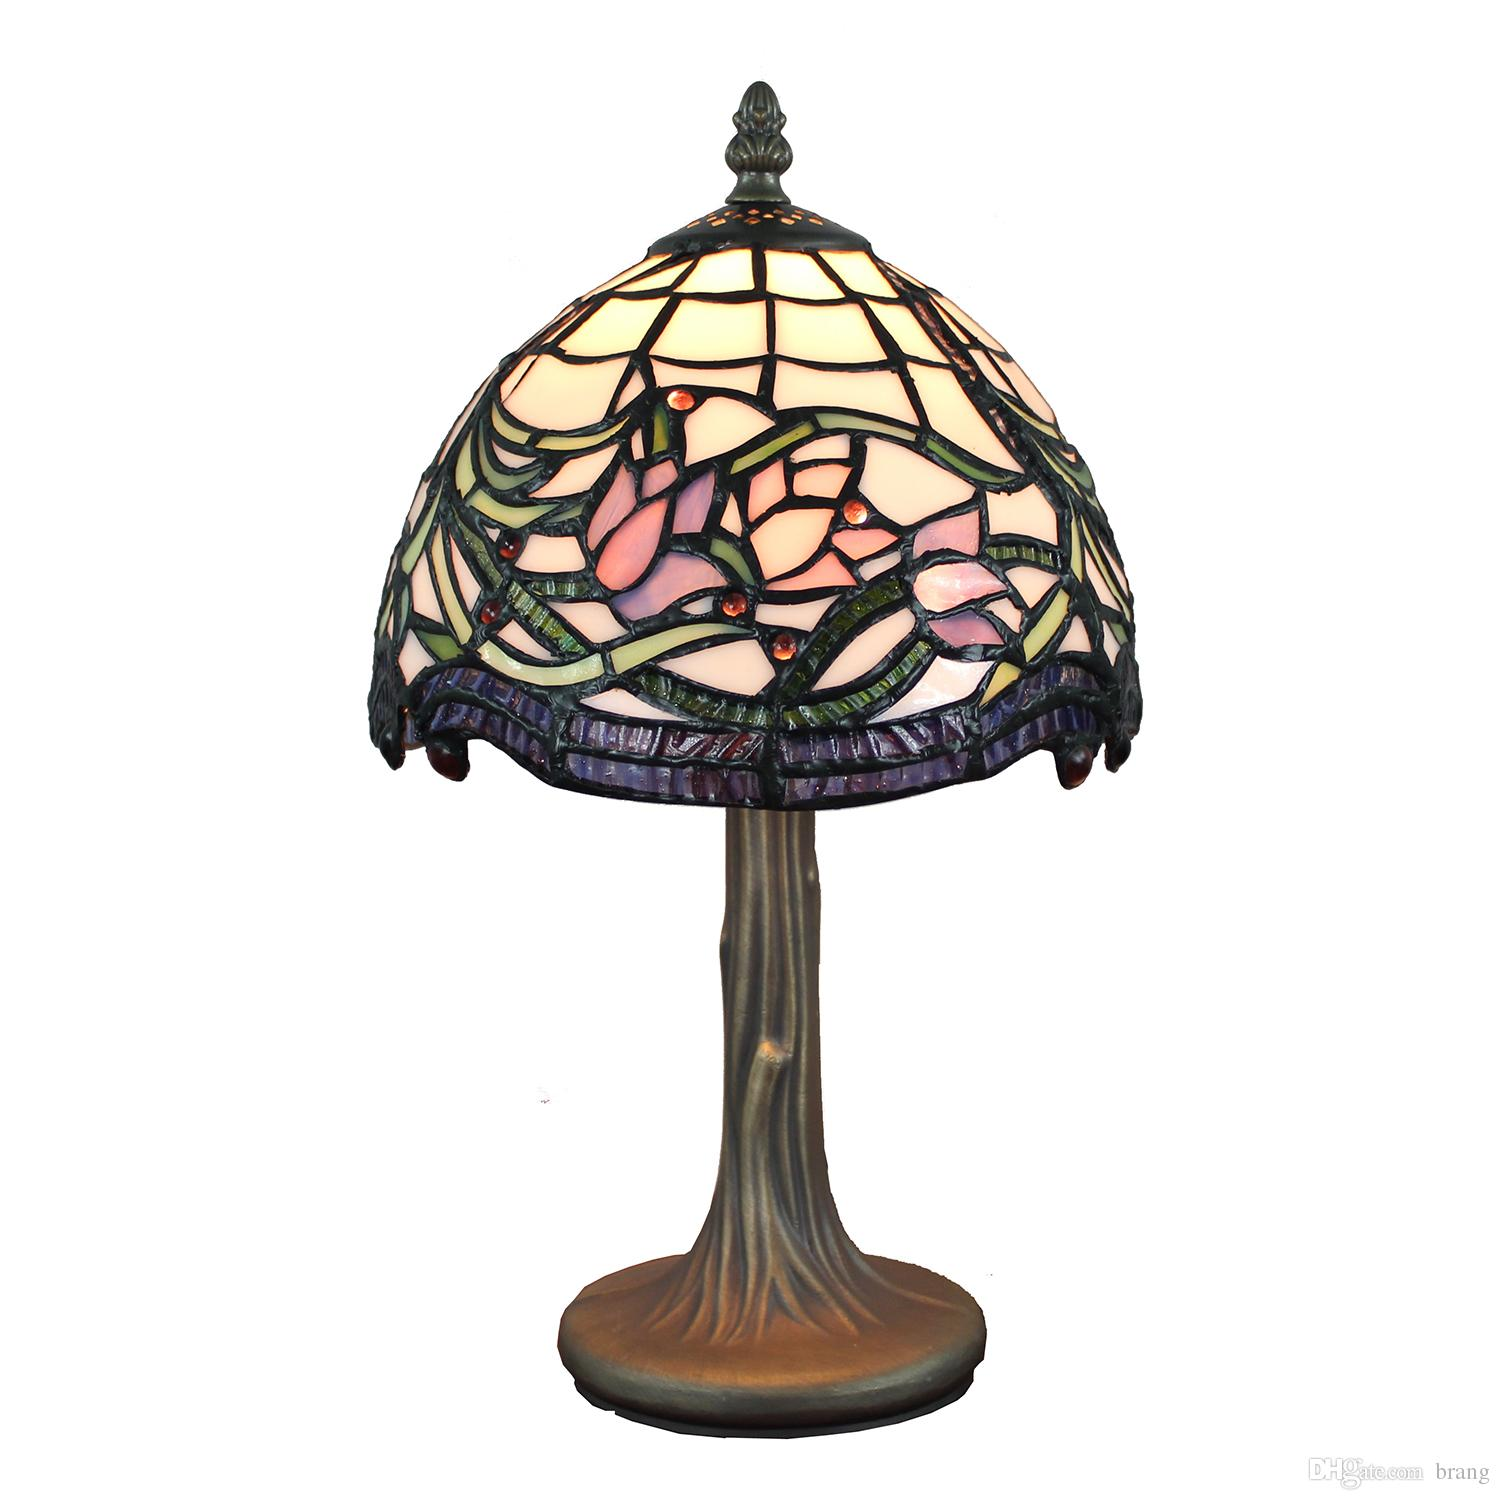 tiffany style lamp stained glass table hand crafted wild accent lamps vine lotus design bedside light from brang dhgate wrought iron frame target decorative chairs antique side